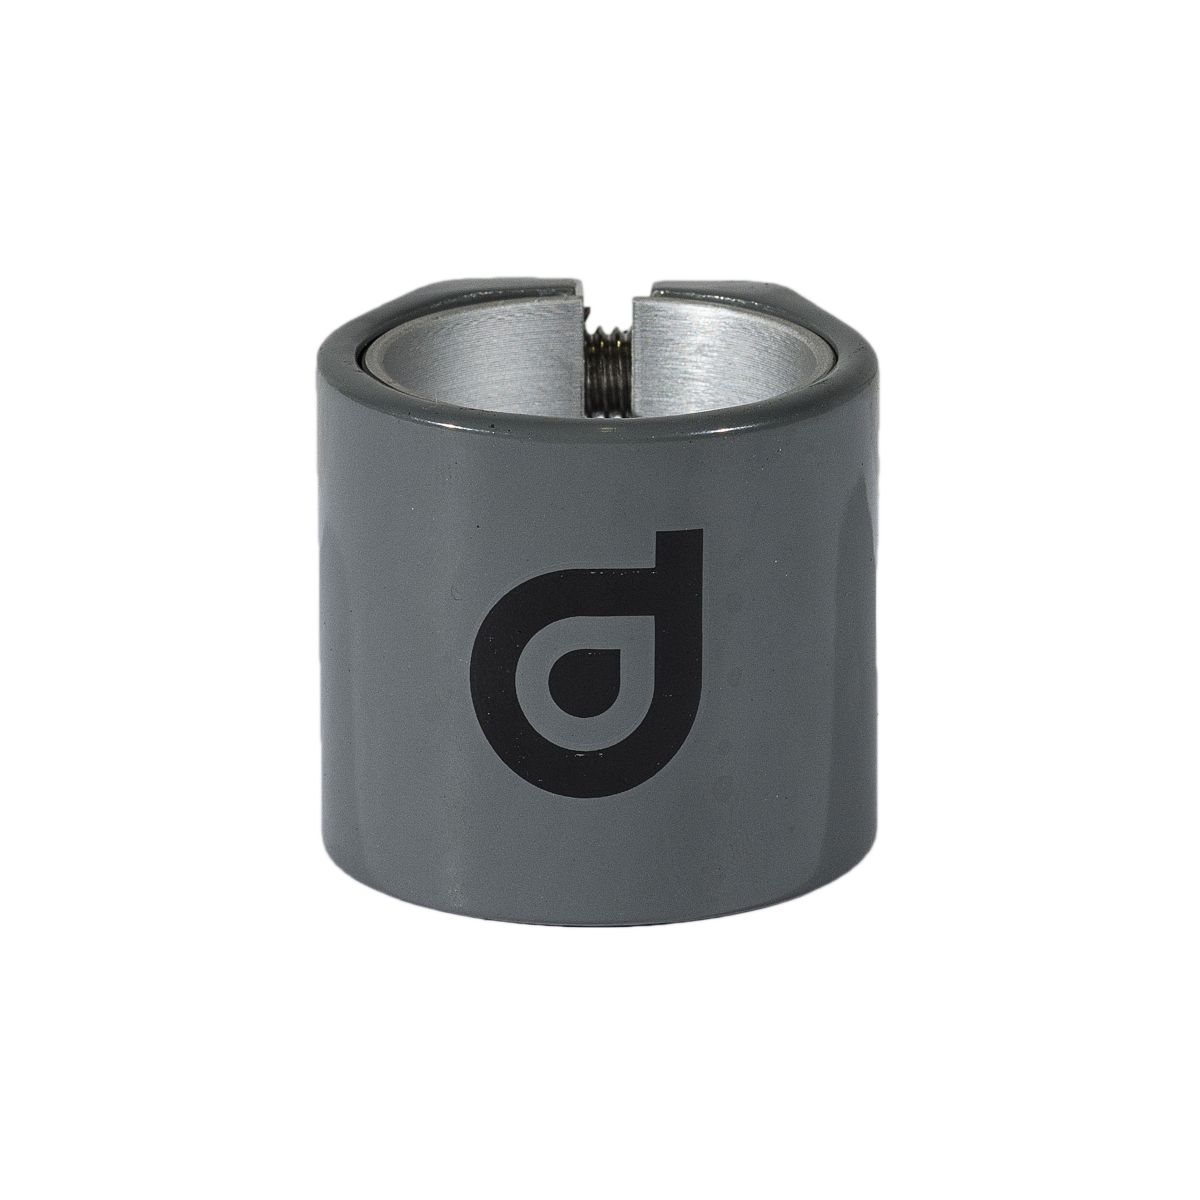 Zacisk District S-series DC15 Rook